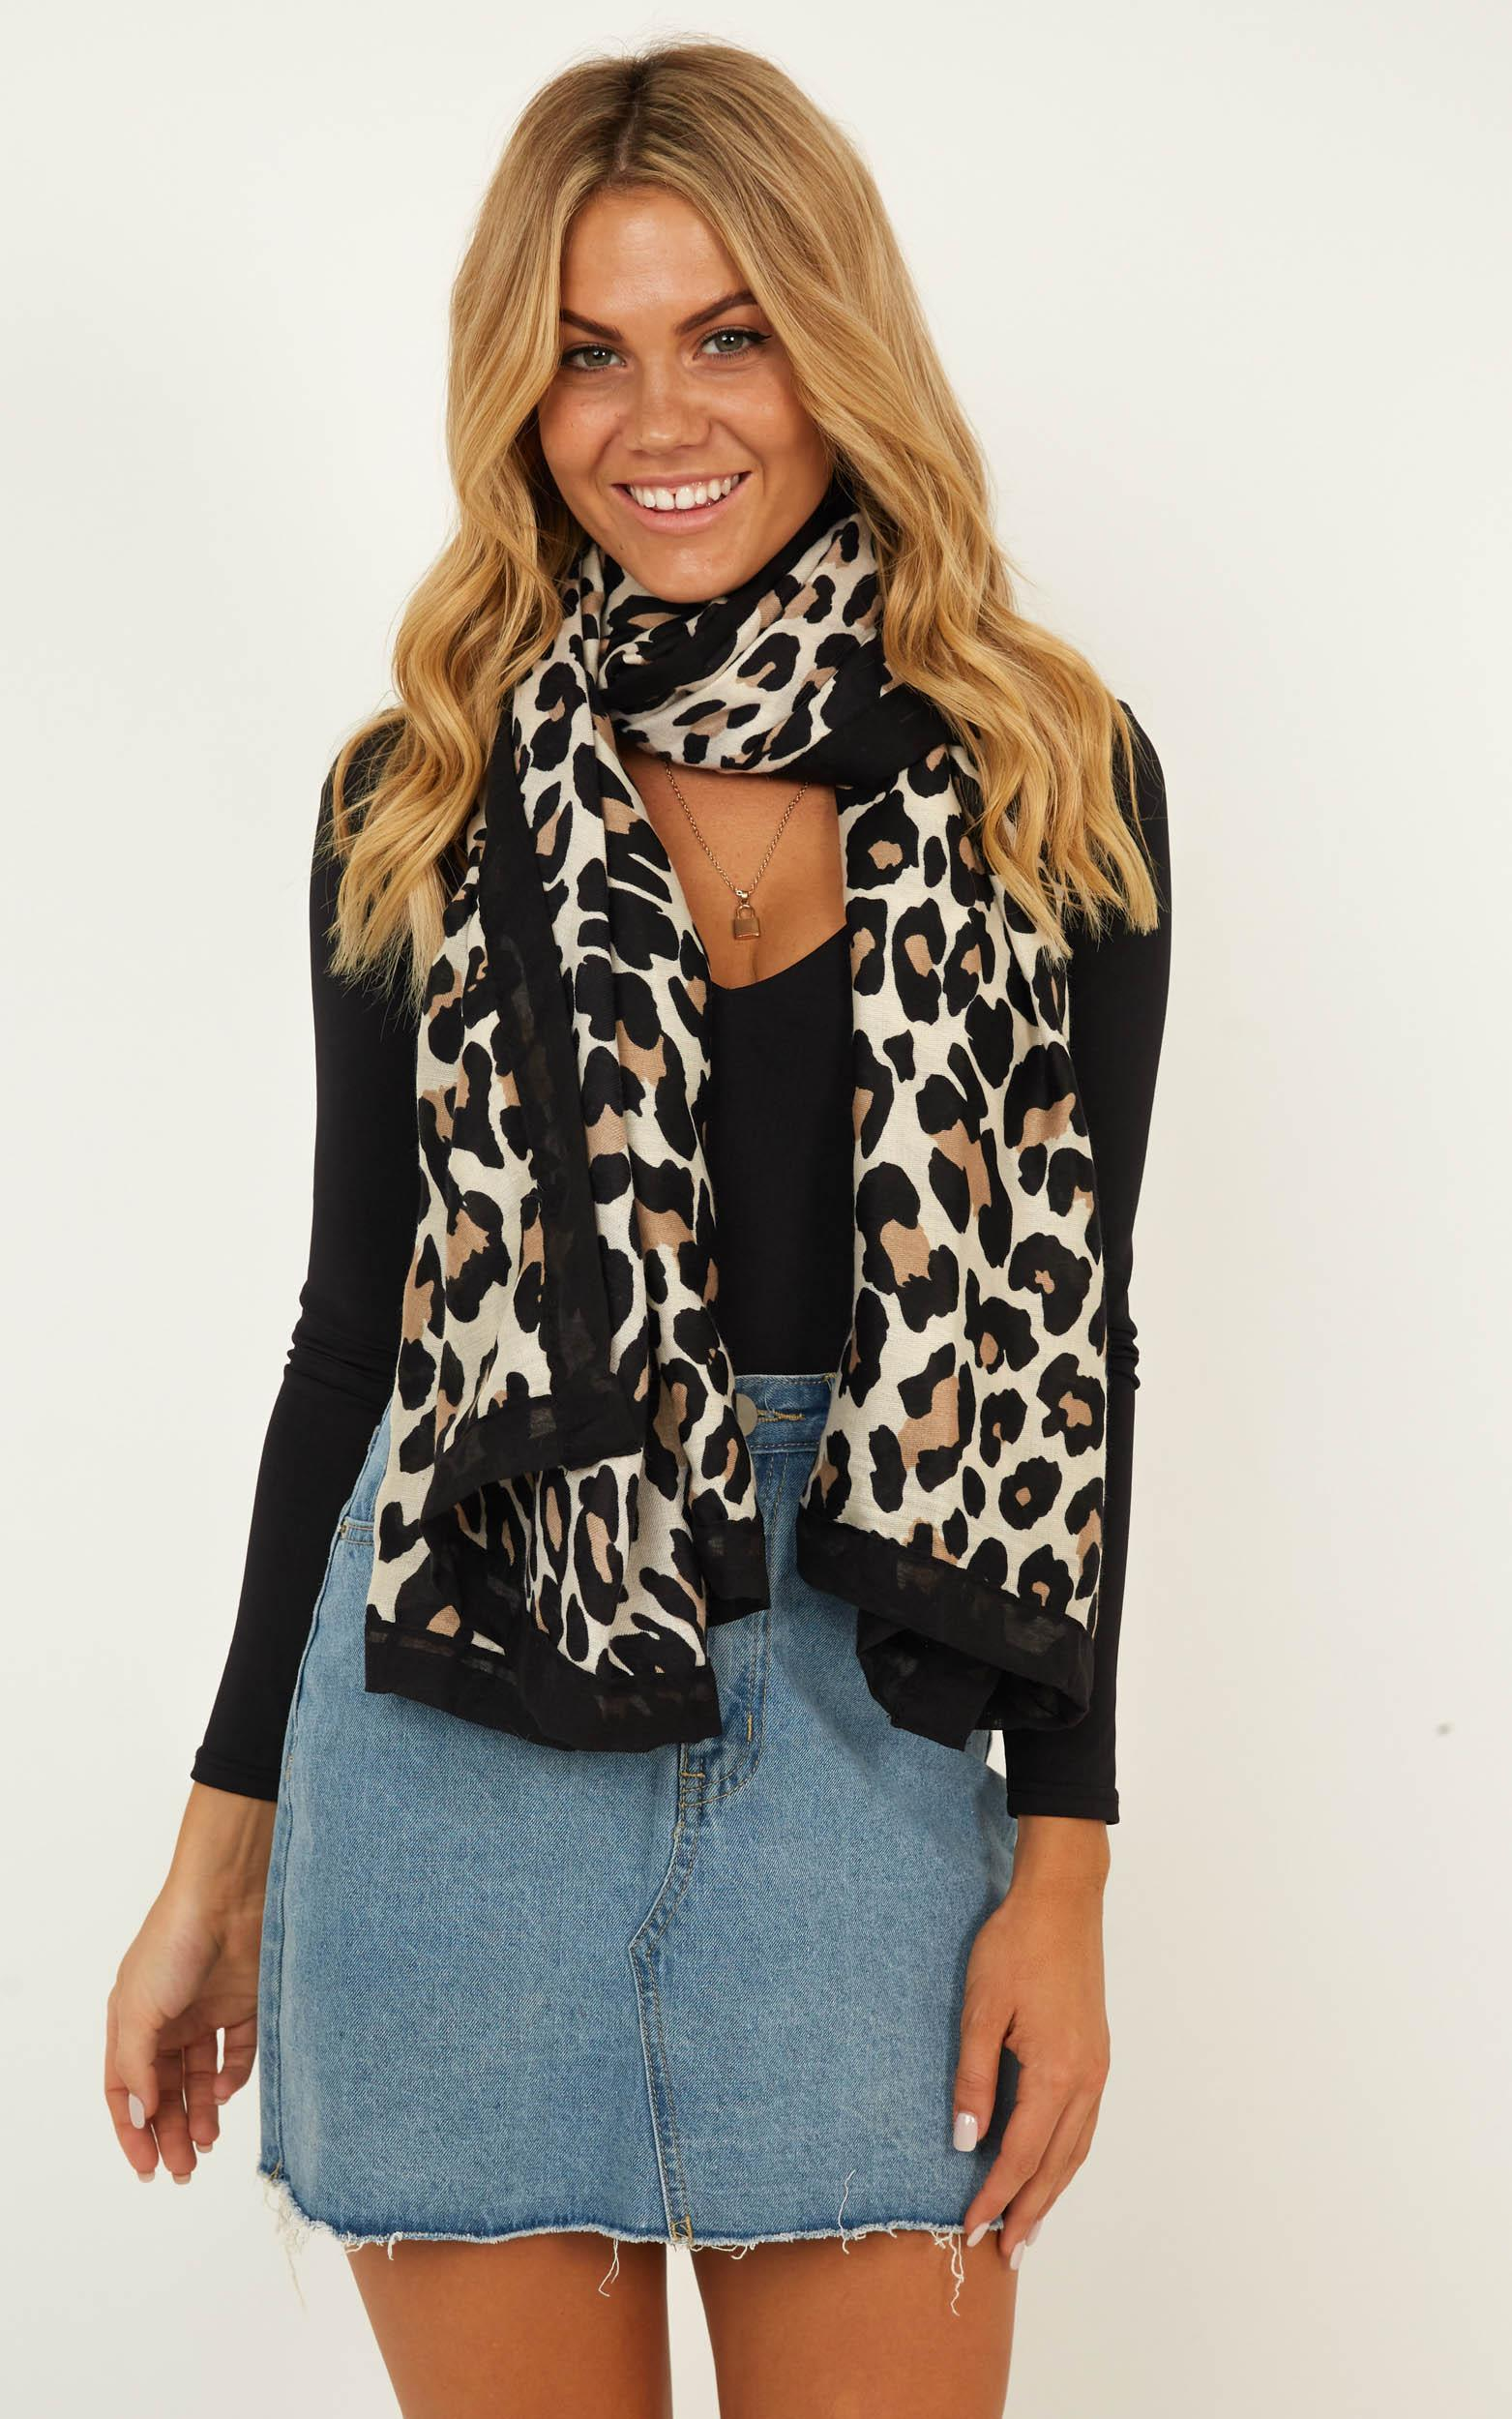 Always Here Scarf In Leopard Print, , hi-res image number null